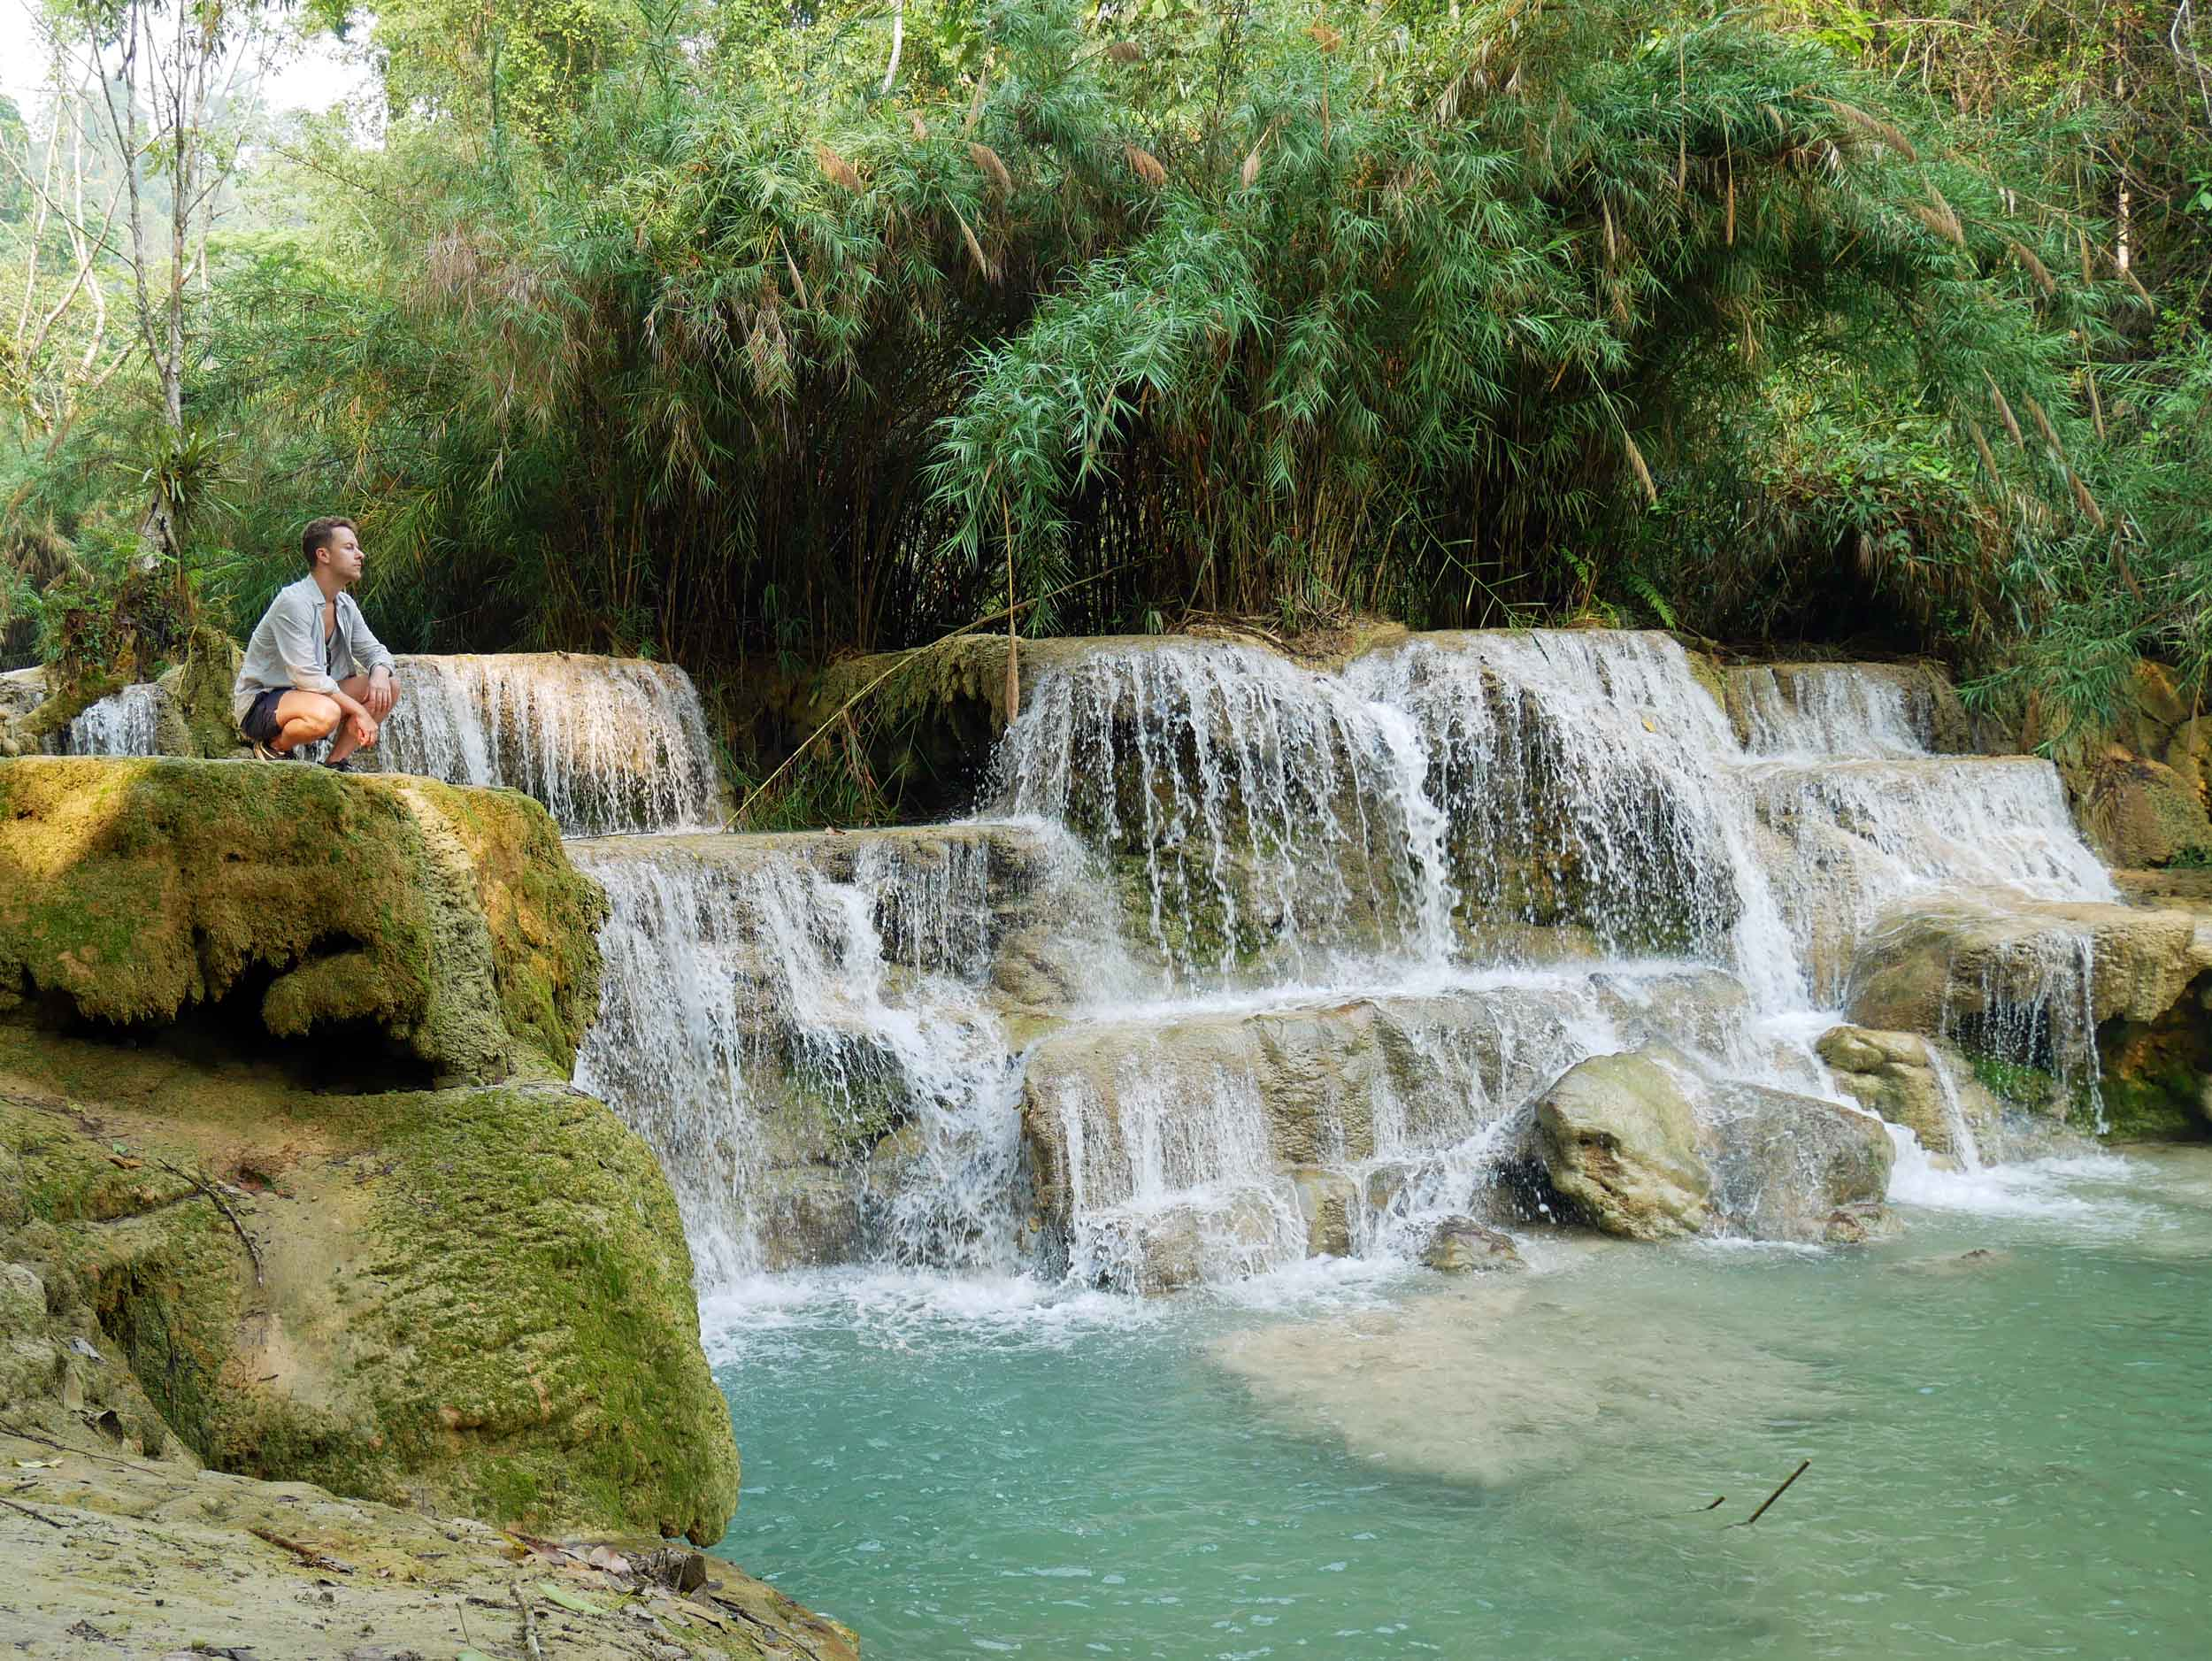 We had to stop and take in one of the many beautiful cascades downstream from Kuang Si Falls.